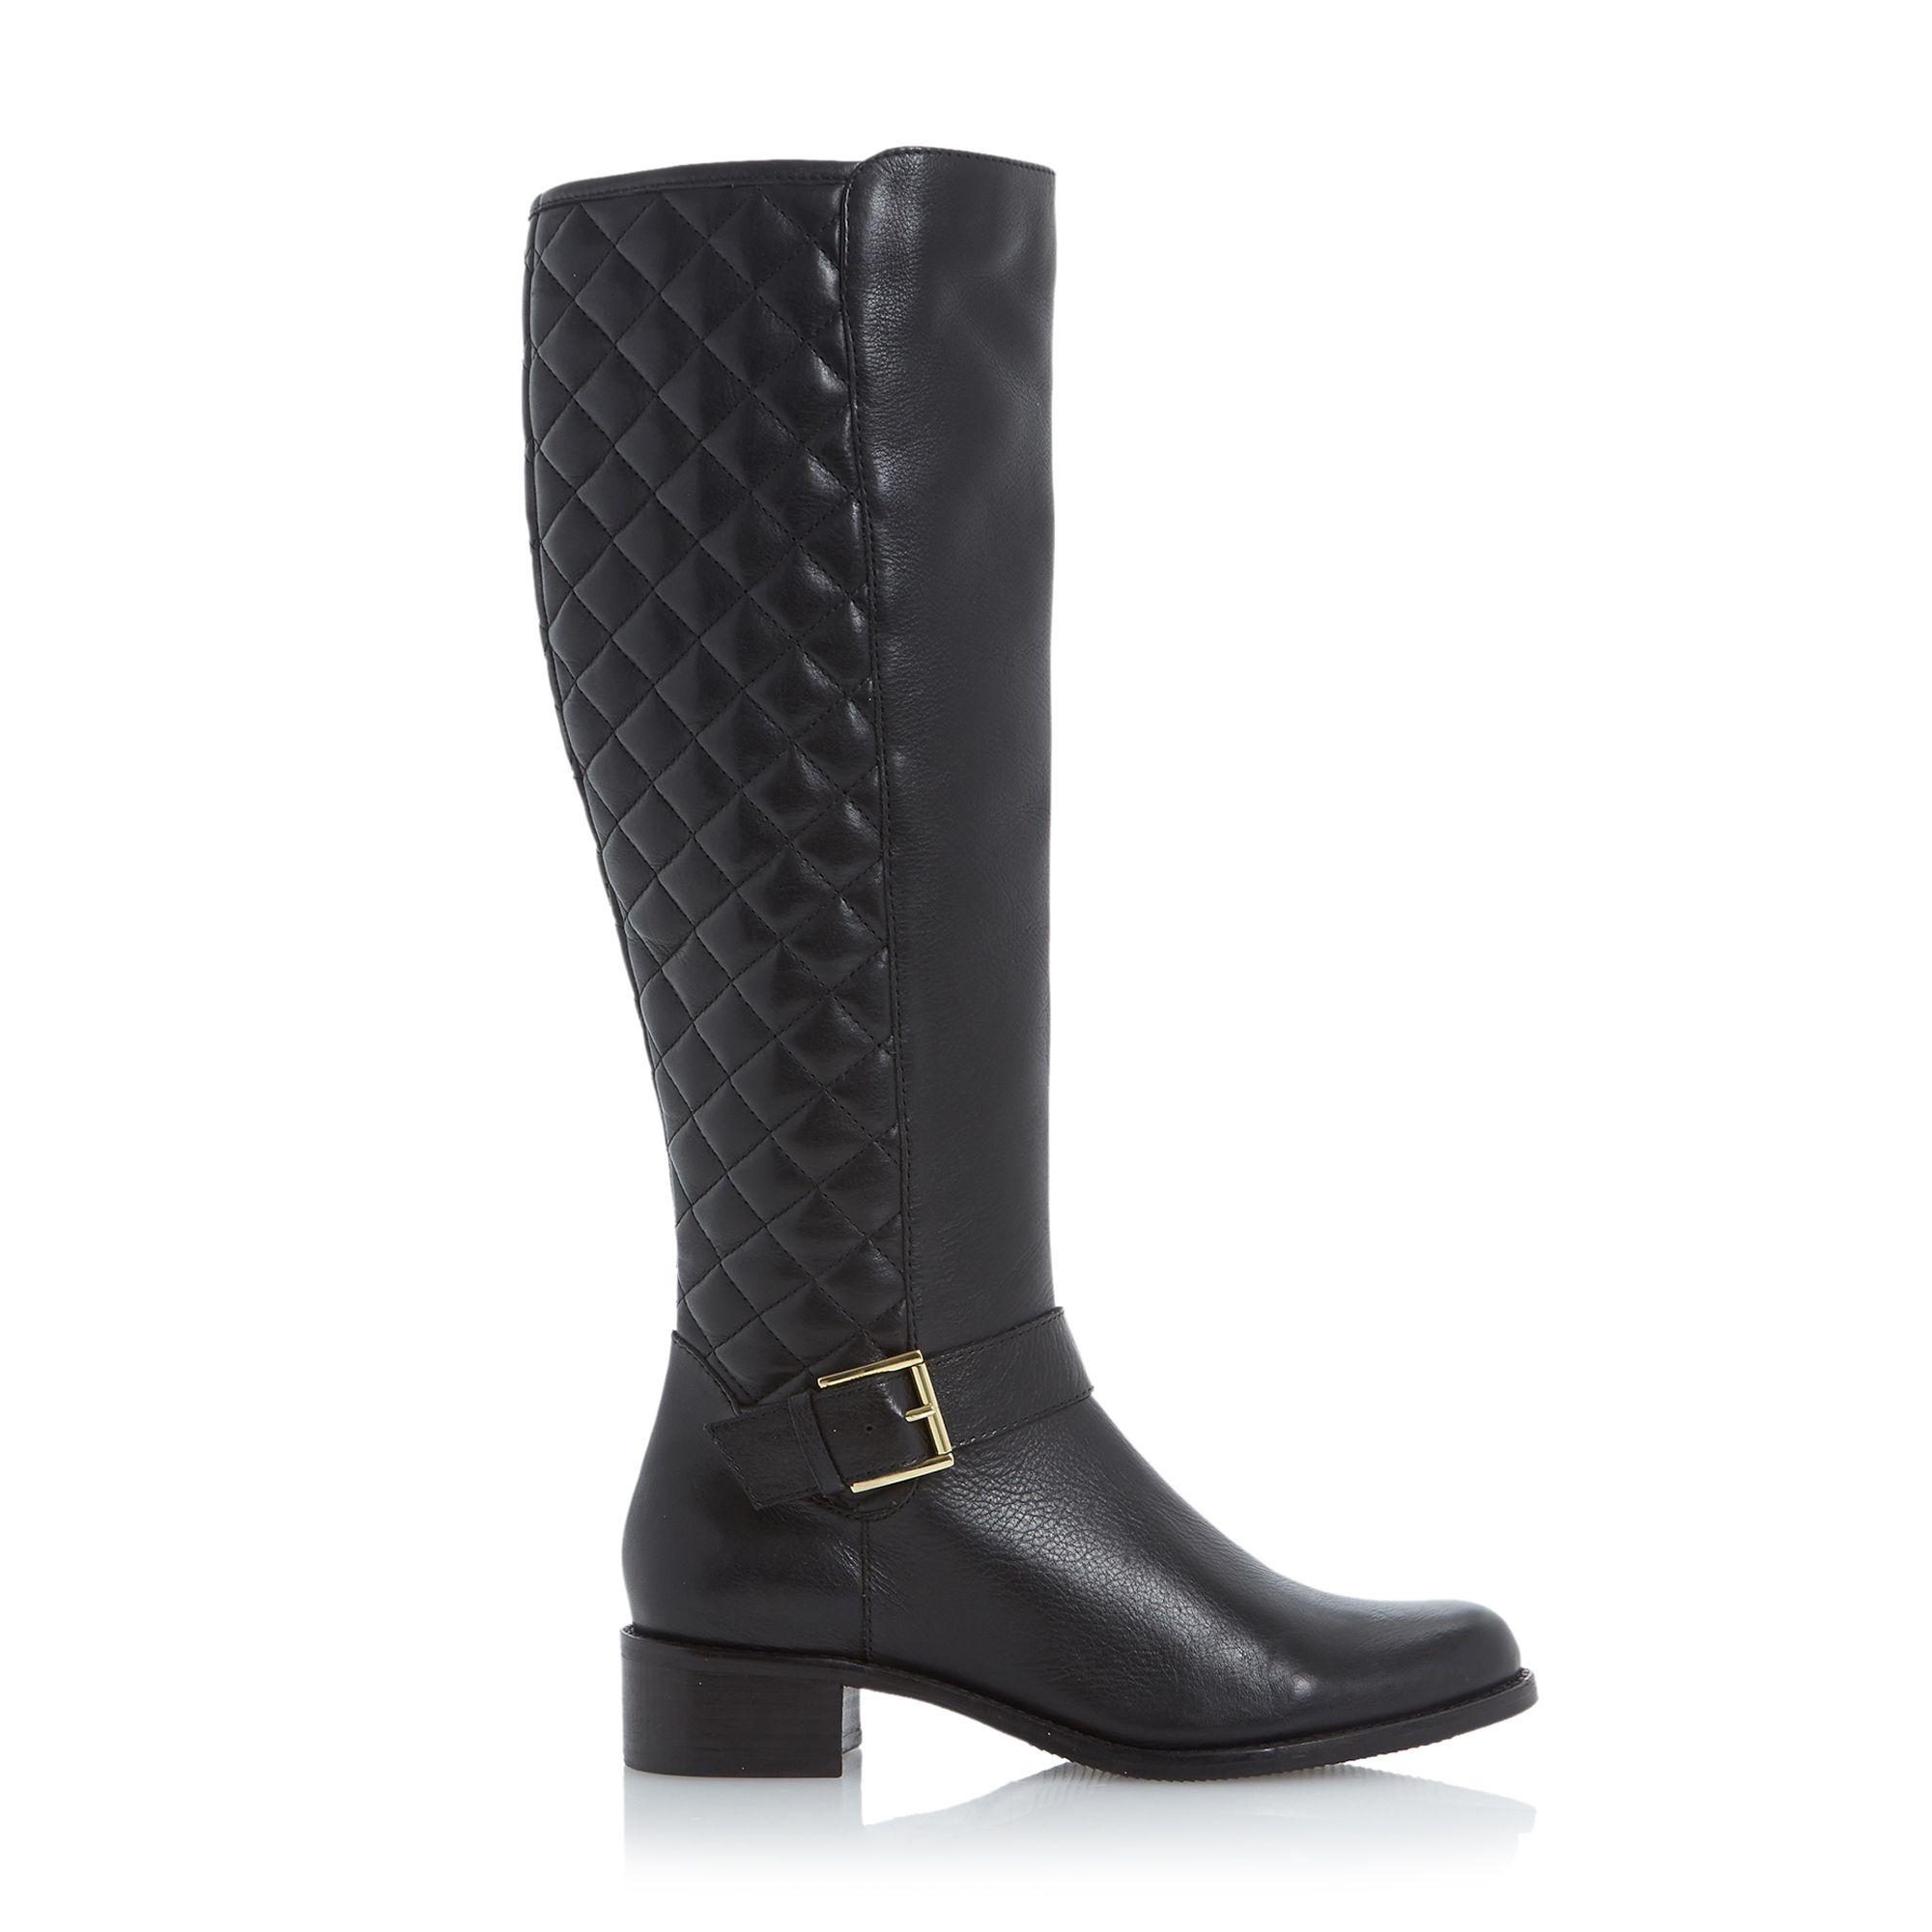 dune torin quilted leather knee high boot in black black